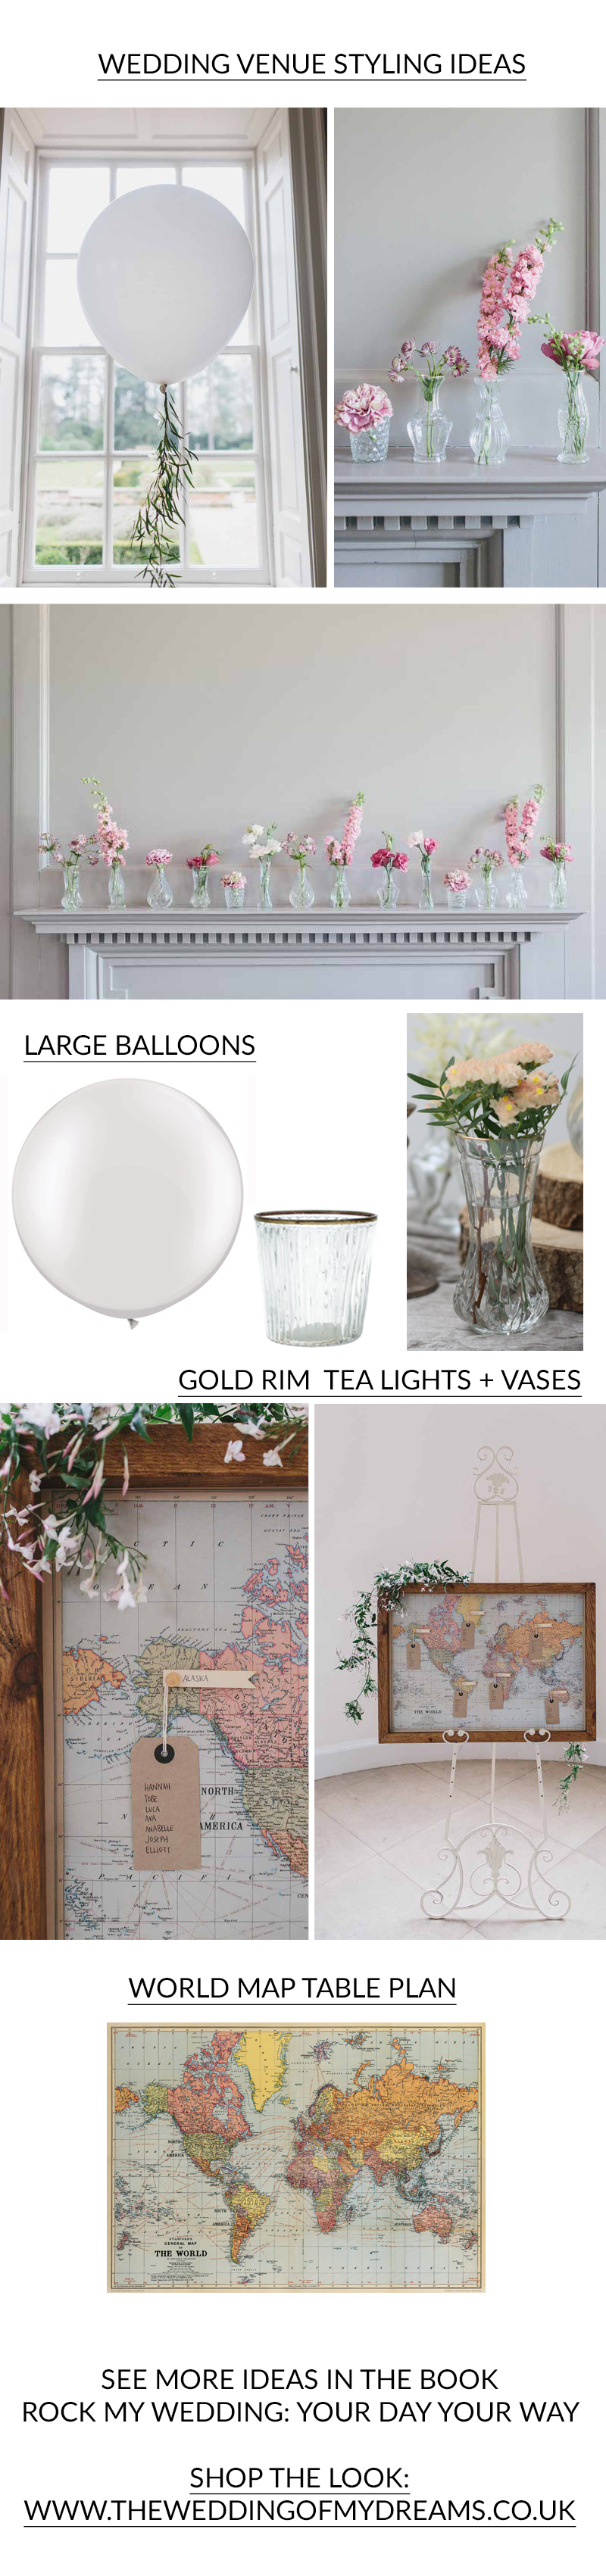 WEDDING VENUE STYLING IDEAS from Rock My Wedding Book